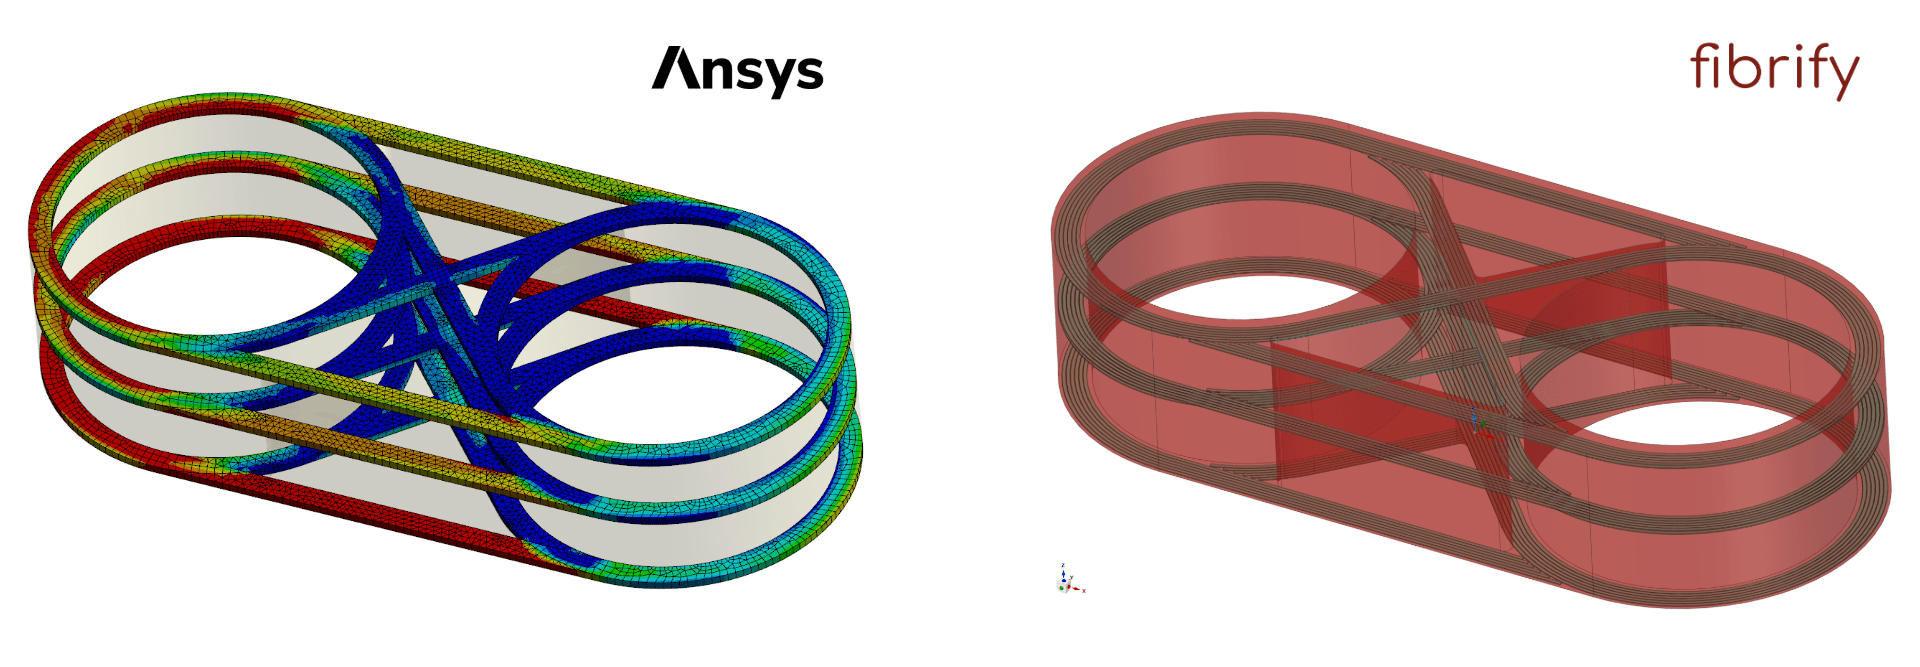 9T Labs and Ansys partner in composite design and simulation tools